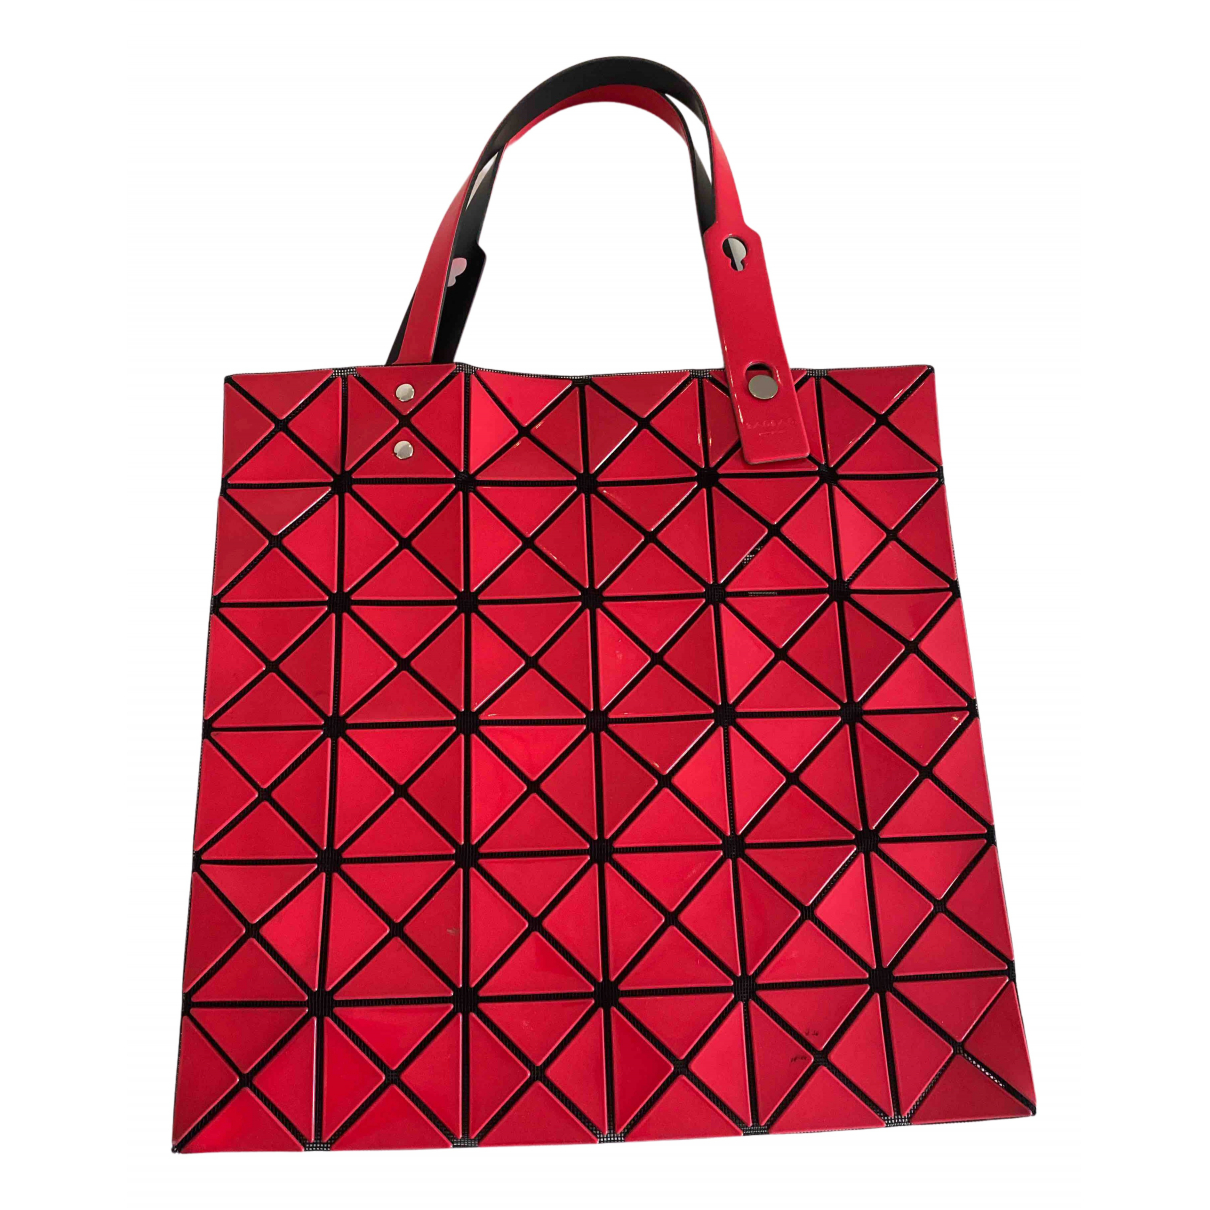 Issey Miyake - Sac a main   pour femme - rouge